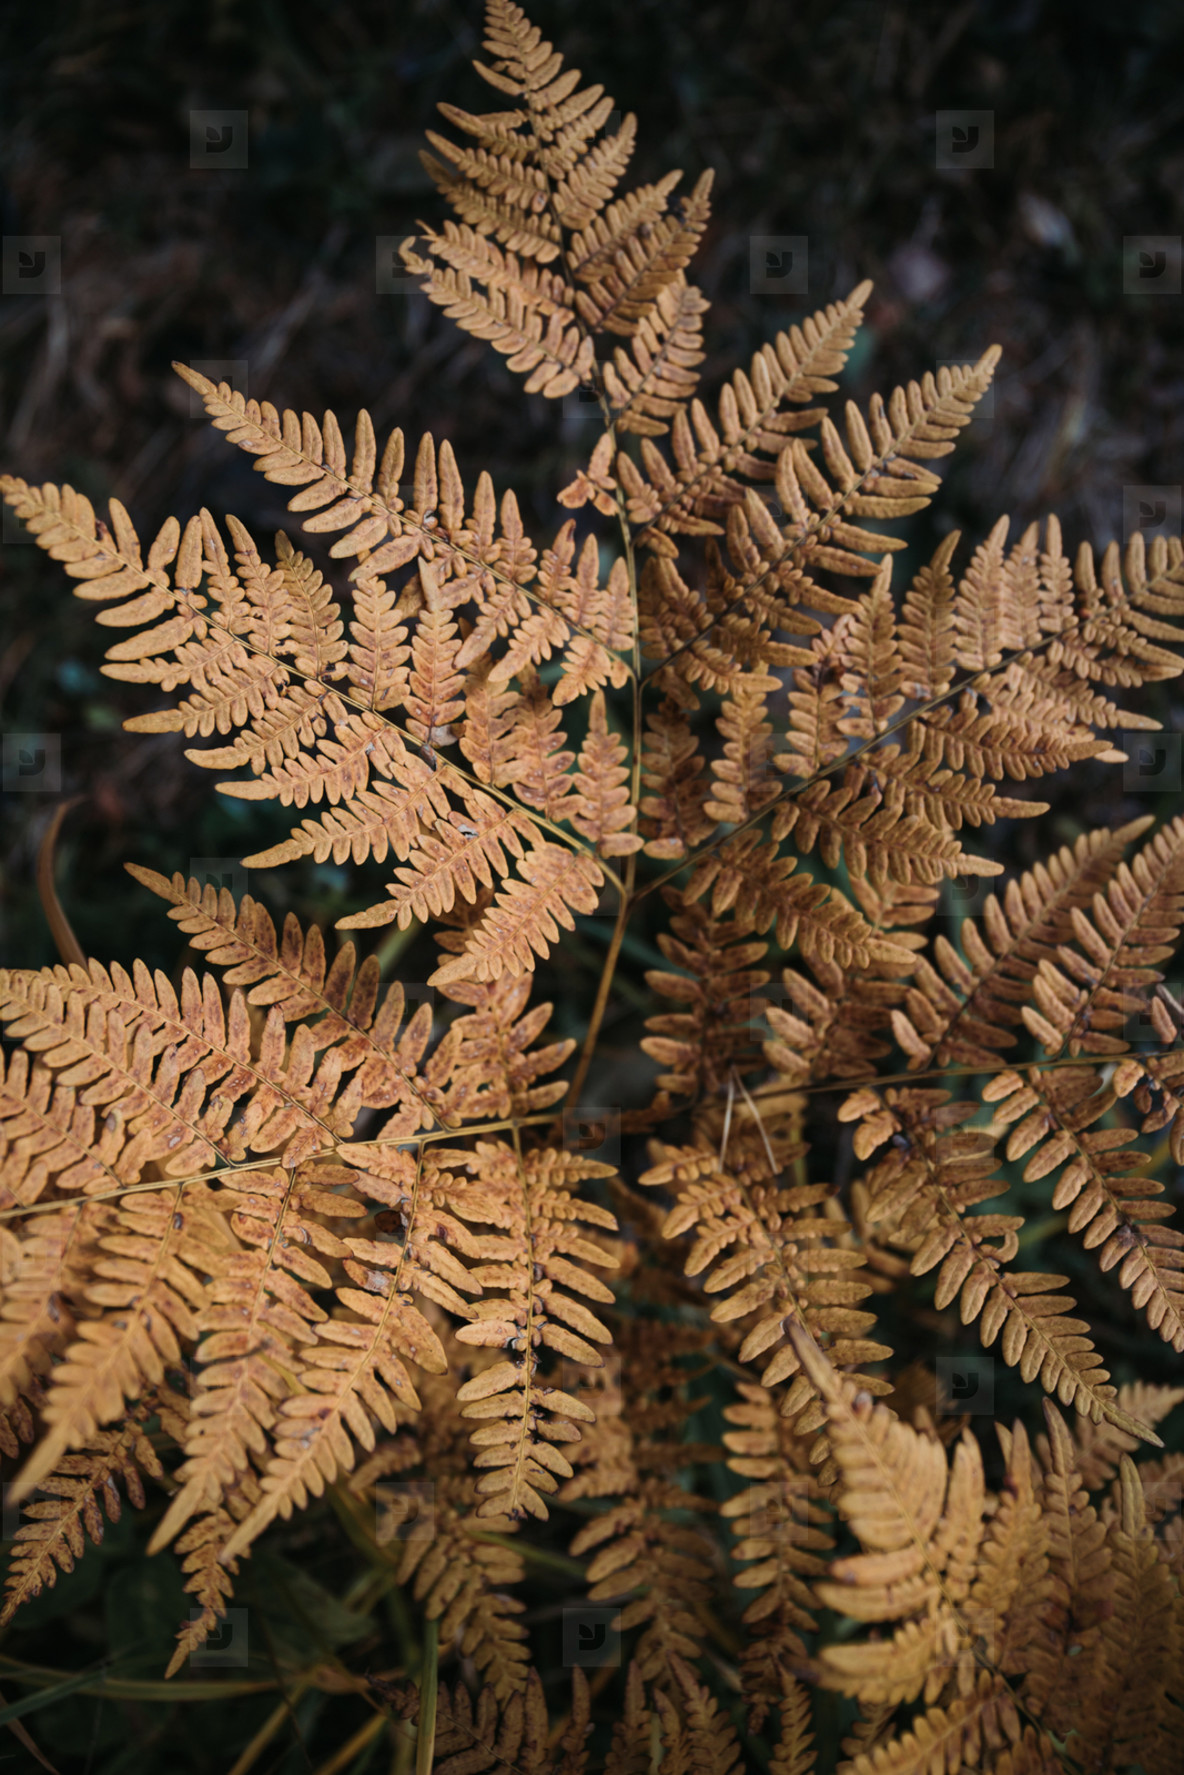 photos fern branch with orange foliage in au 190742 youworkforthem fern branch with orange foliage in autumn forest nature frame macro photography